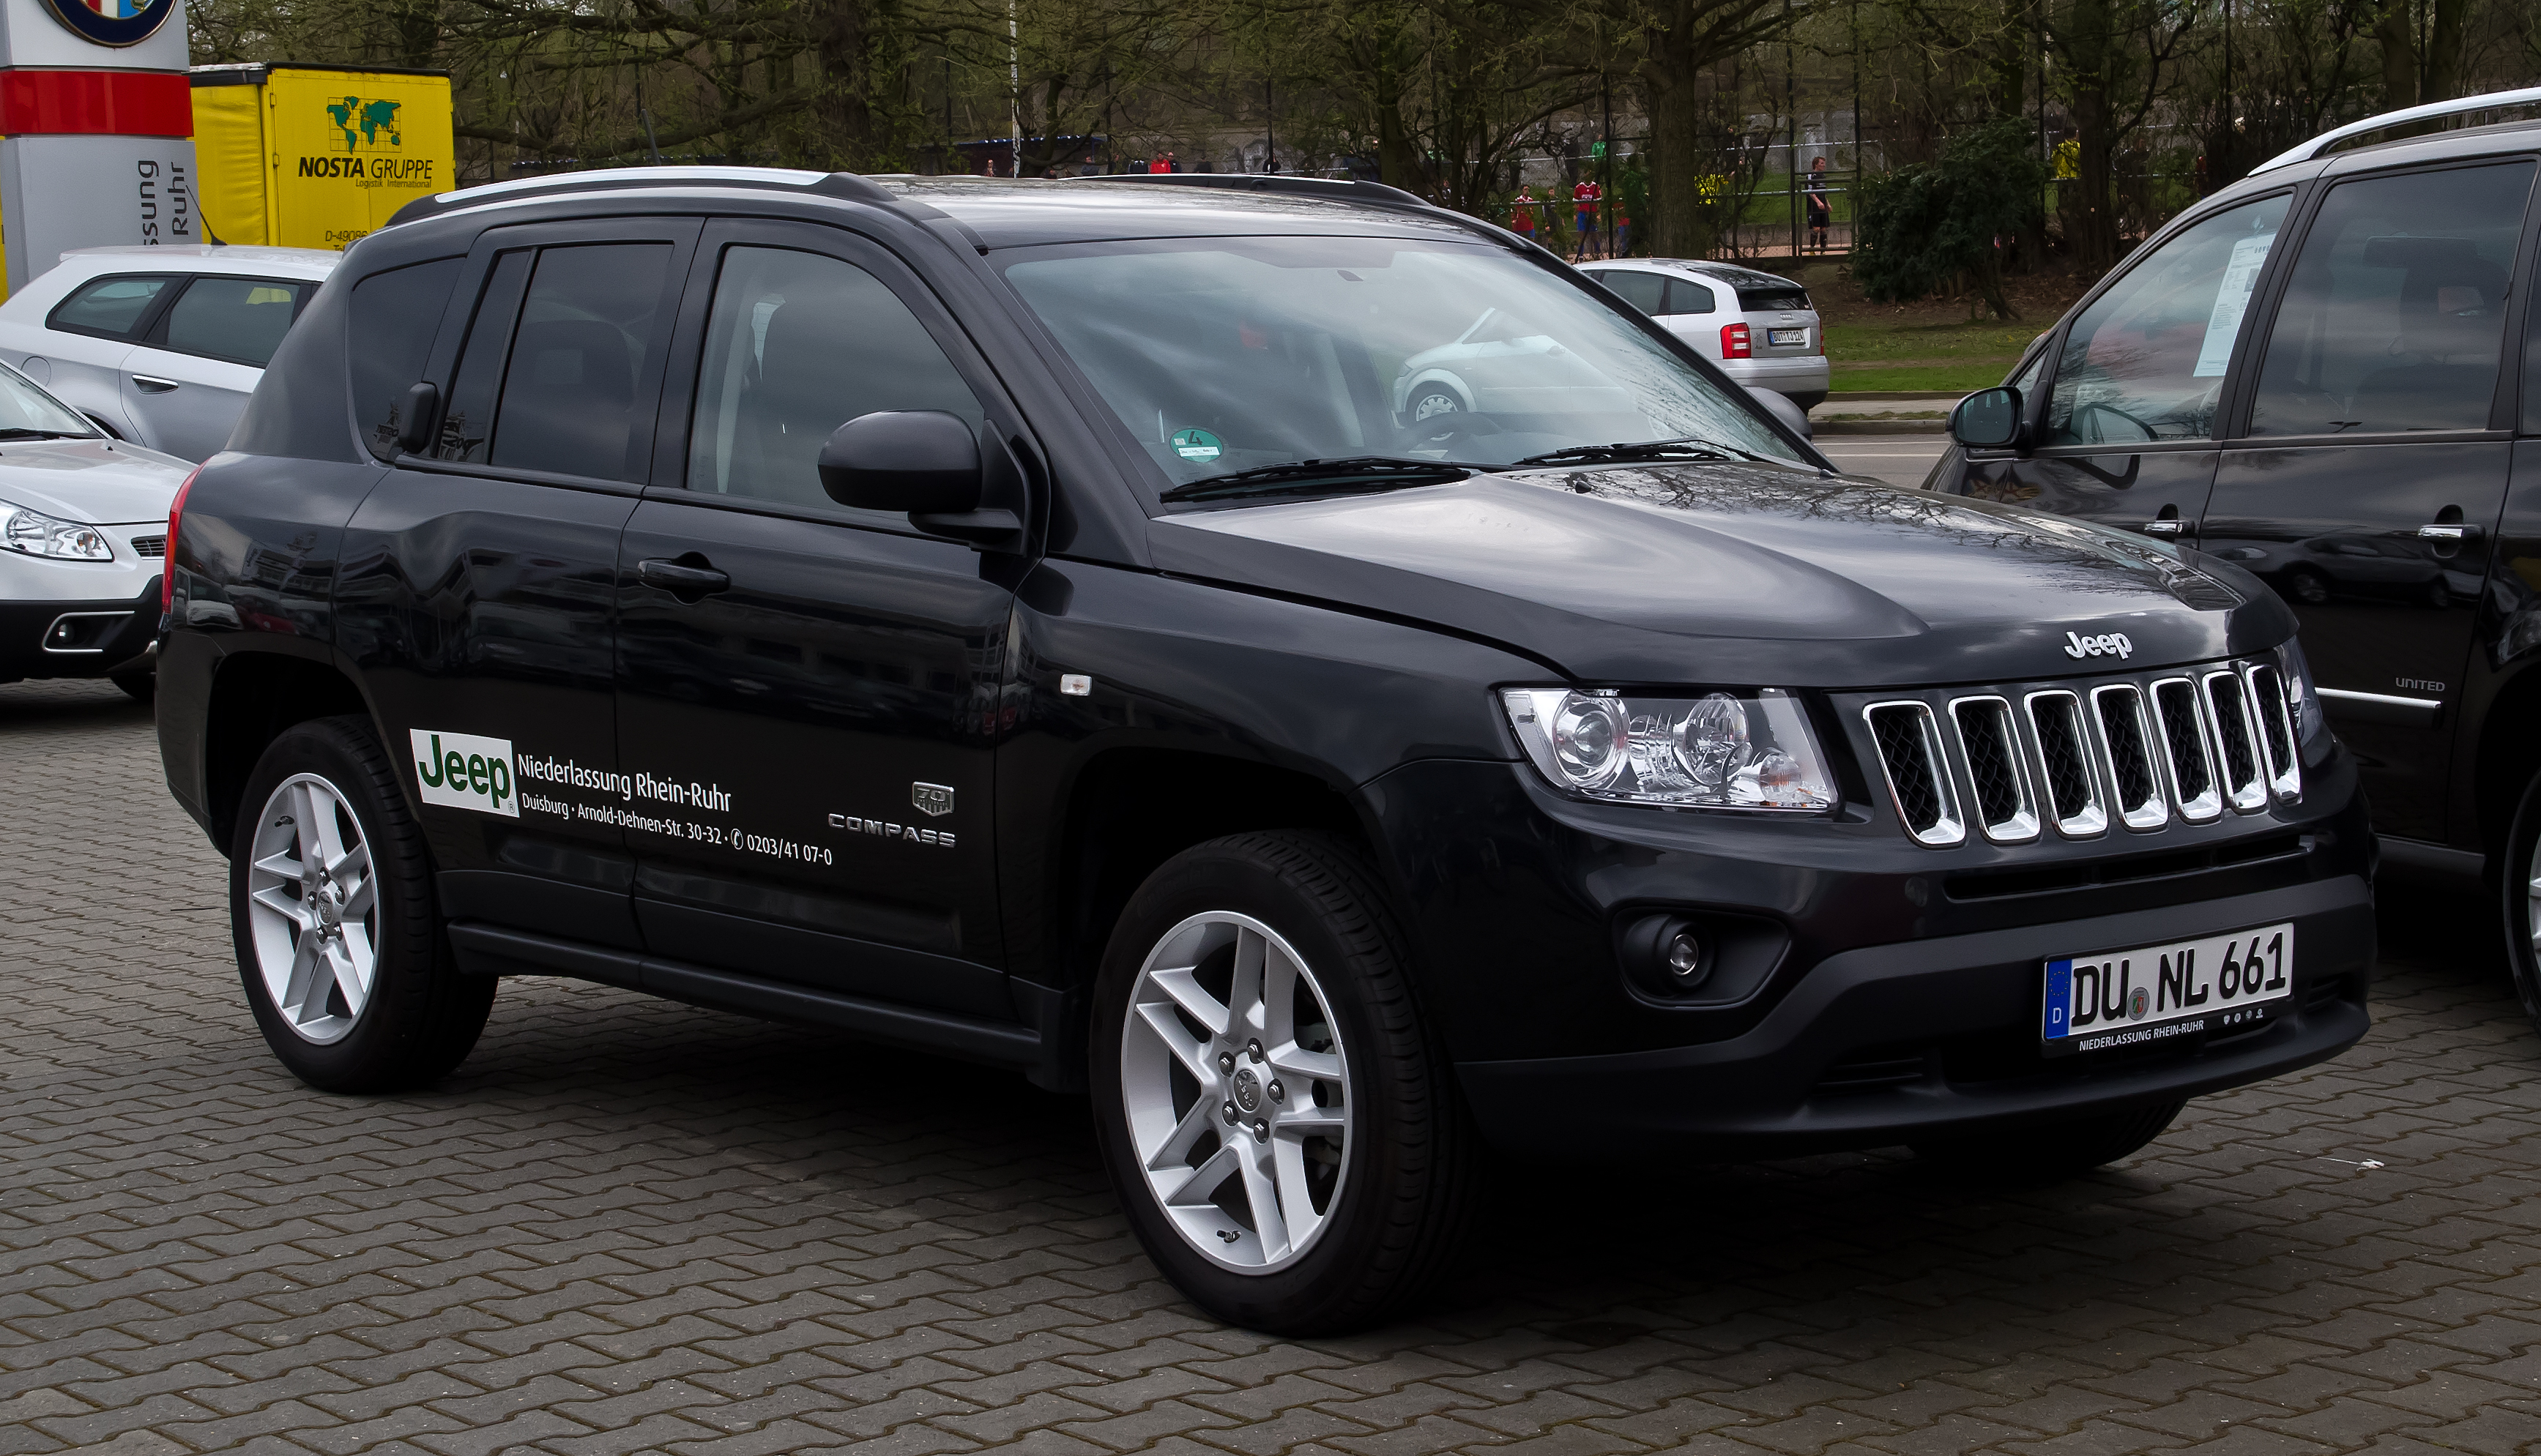 datei:jeep compass 2.2 crd limited 70th anniversary edition